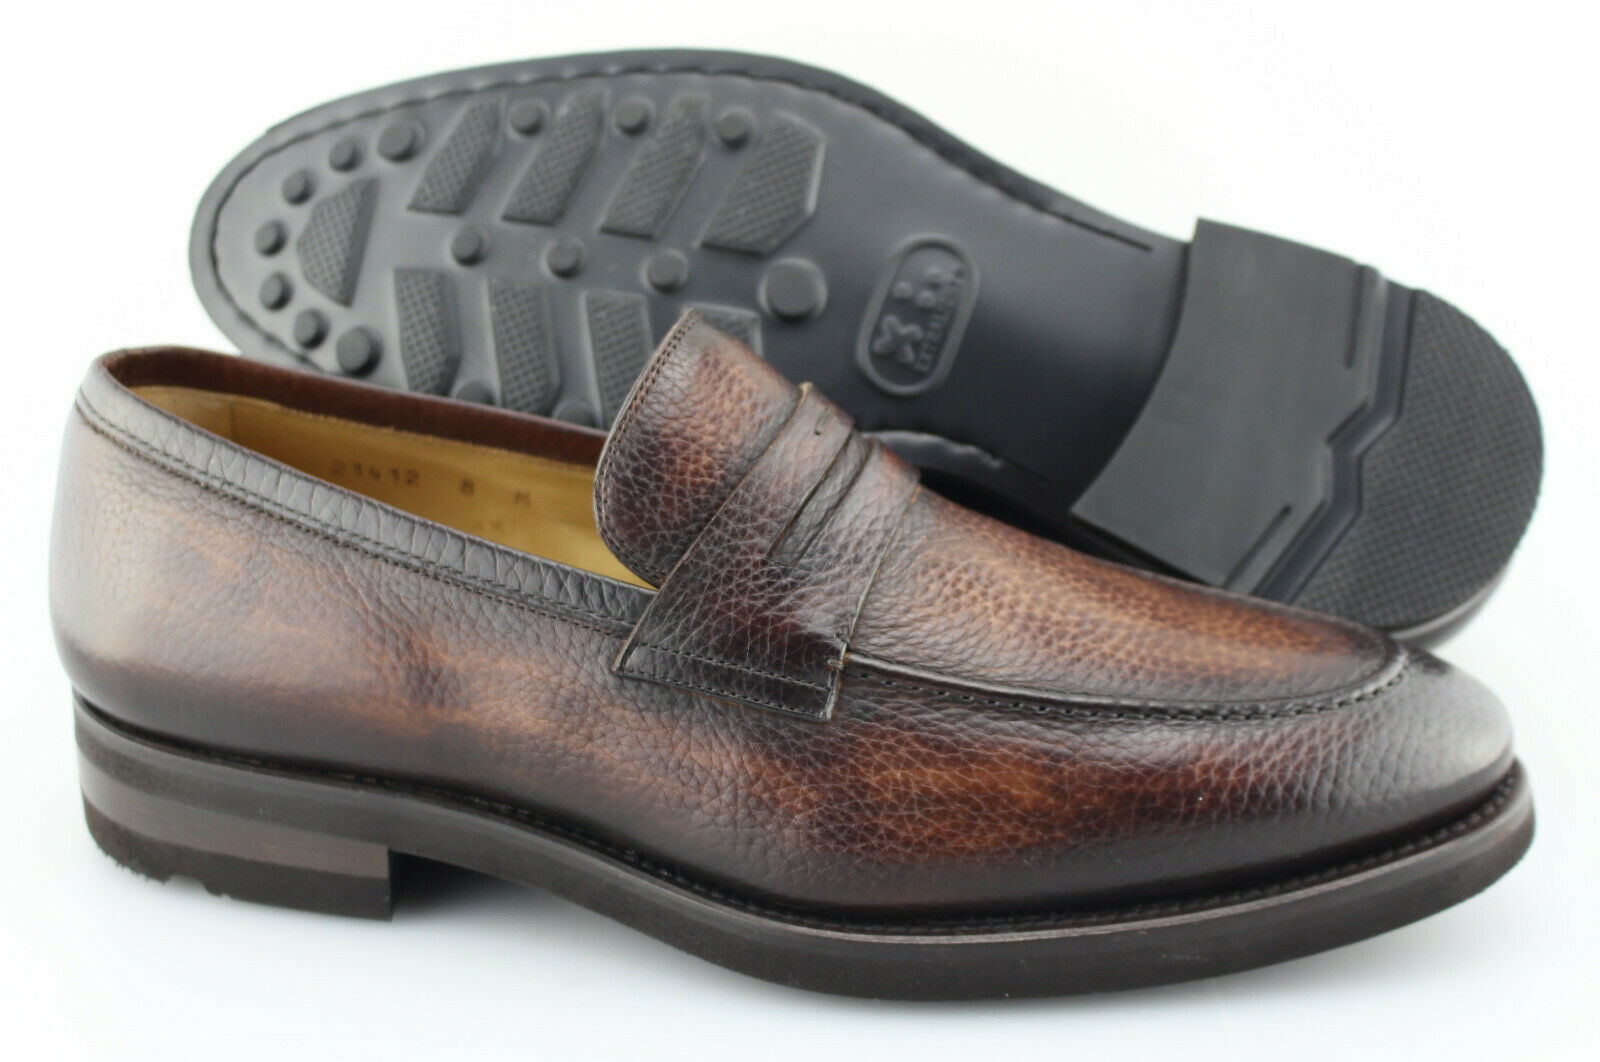 Men's MAGNANNI 'Matlin' Marroneee Leather Penny Loafers Dimensione US 8 - D